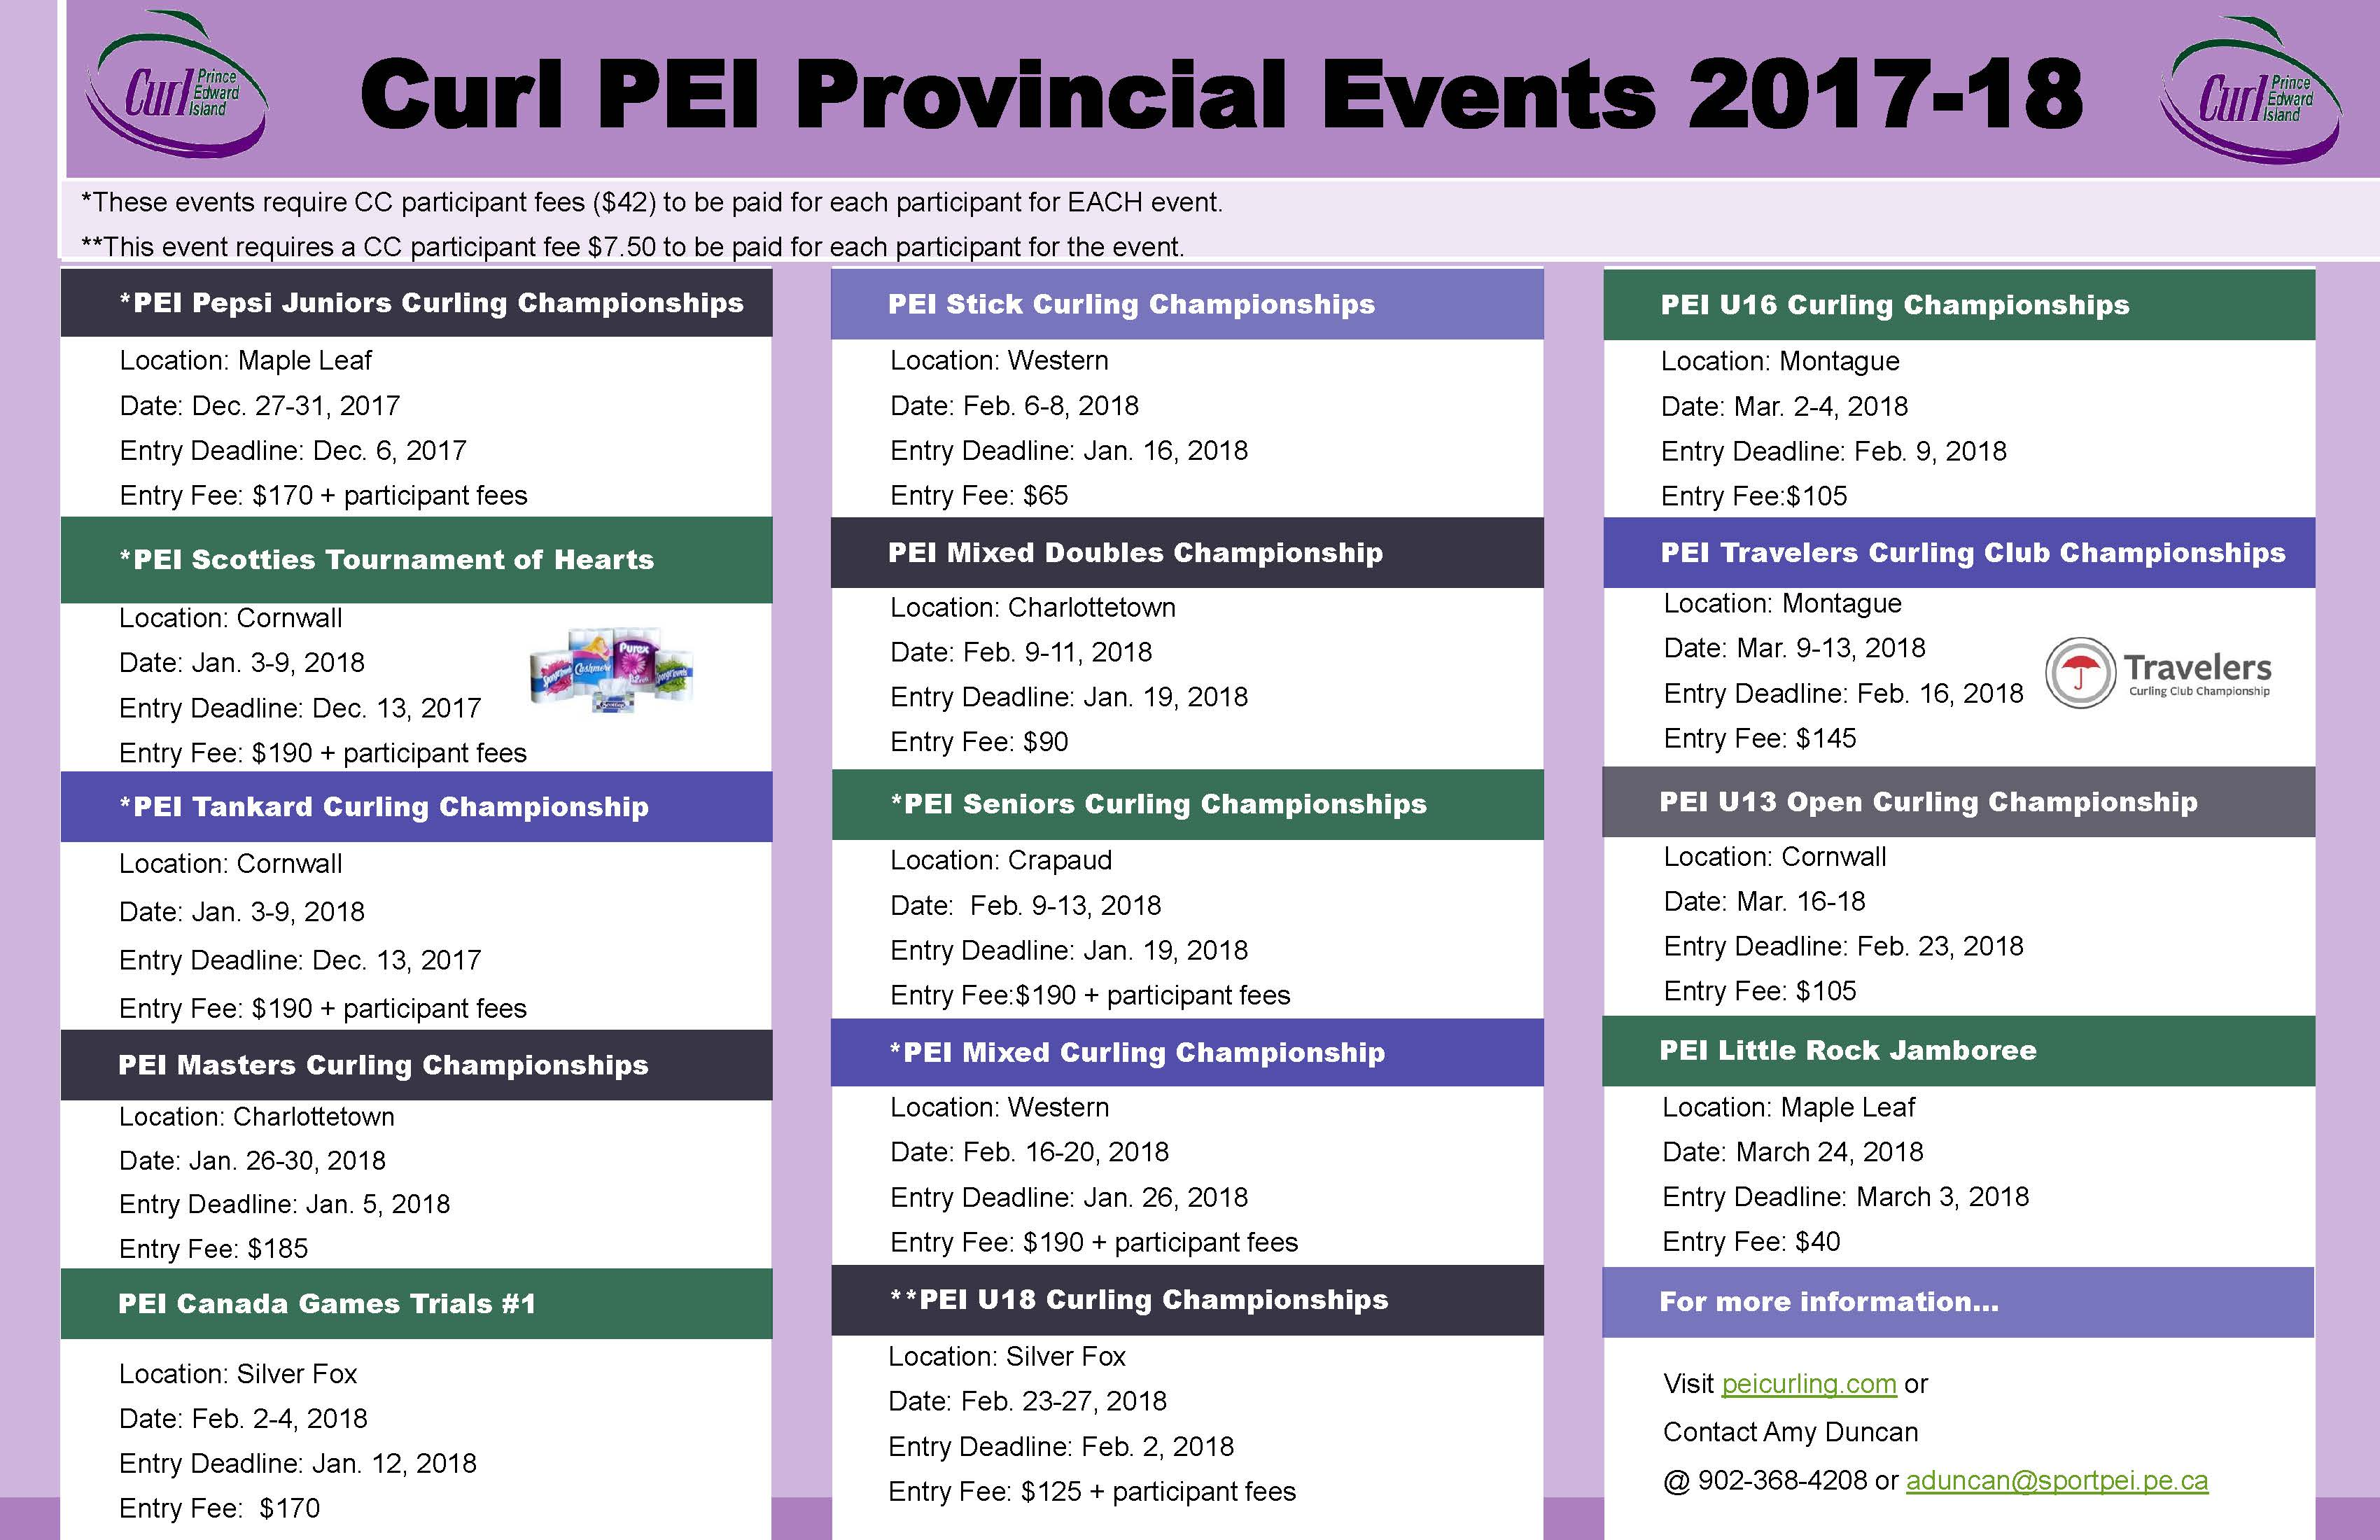 Cornwall to host Provincial Men's, Women's, and Under 13 Ch'ships this season